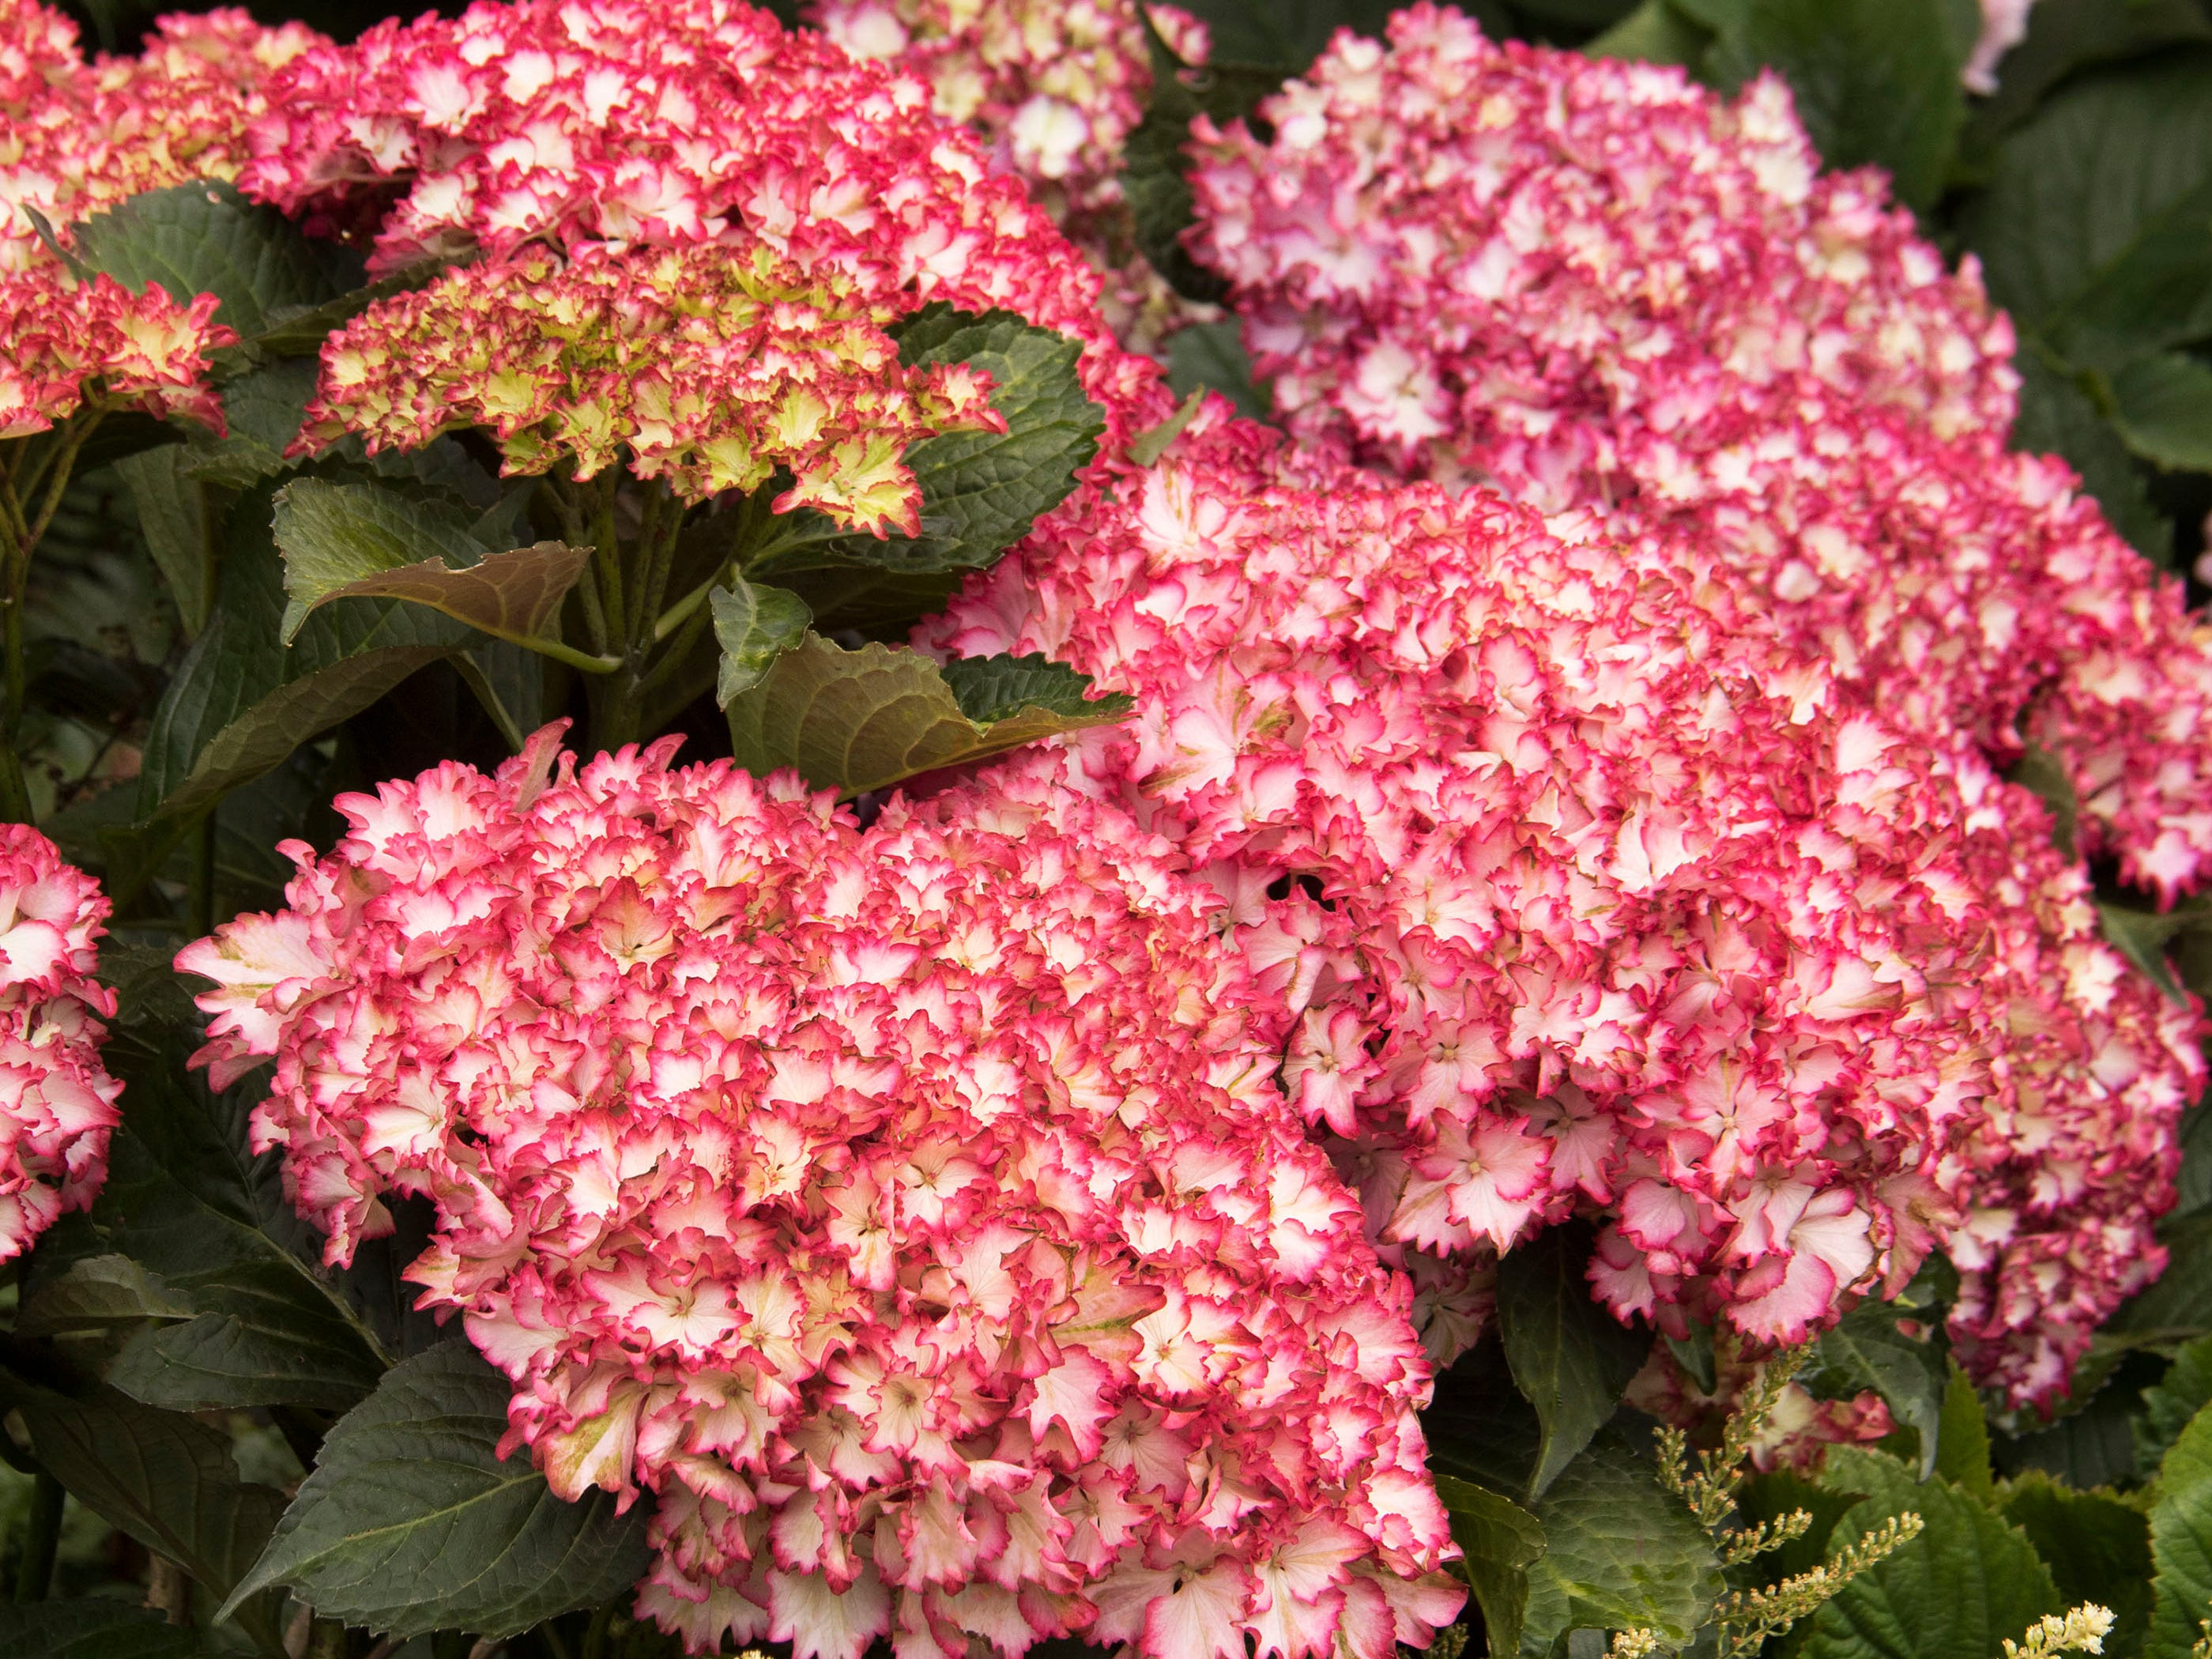 Fire Island hydrangea, part of the Seaside Serenade Collection, has frilly white petals edged in red.